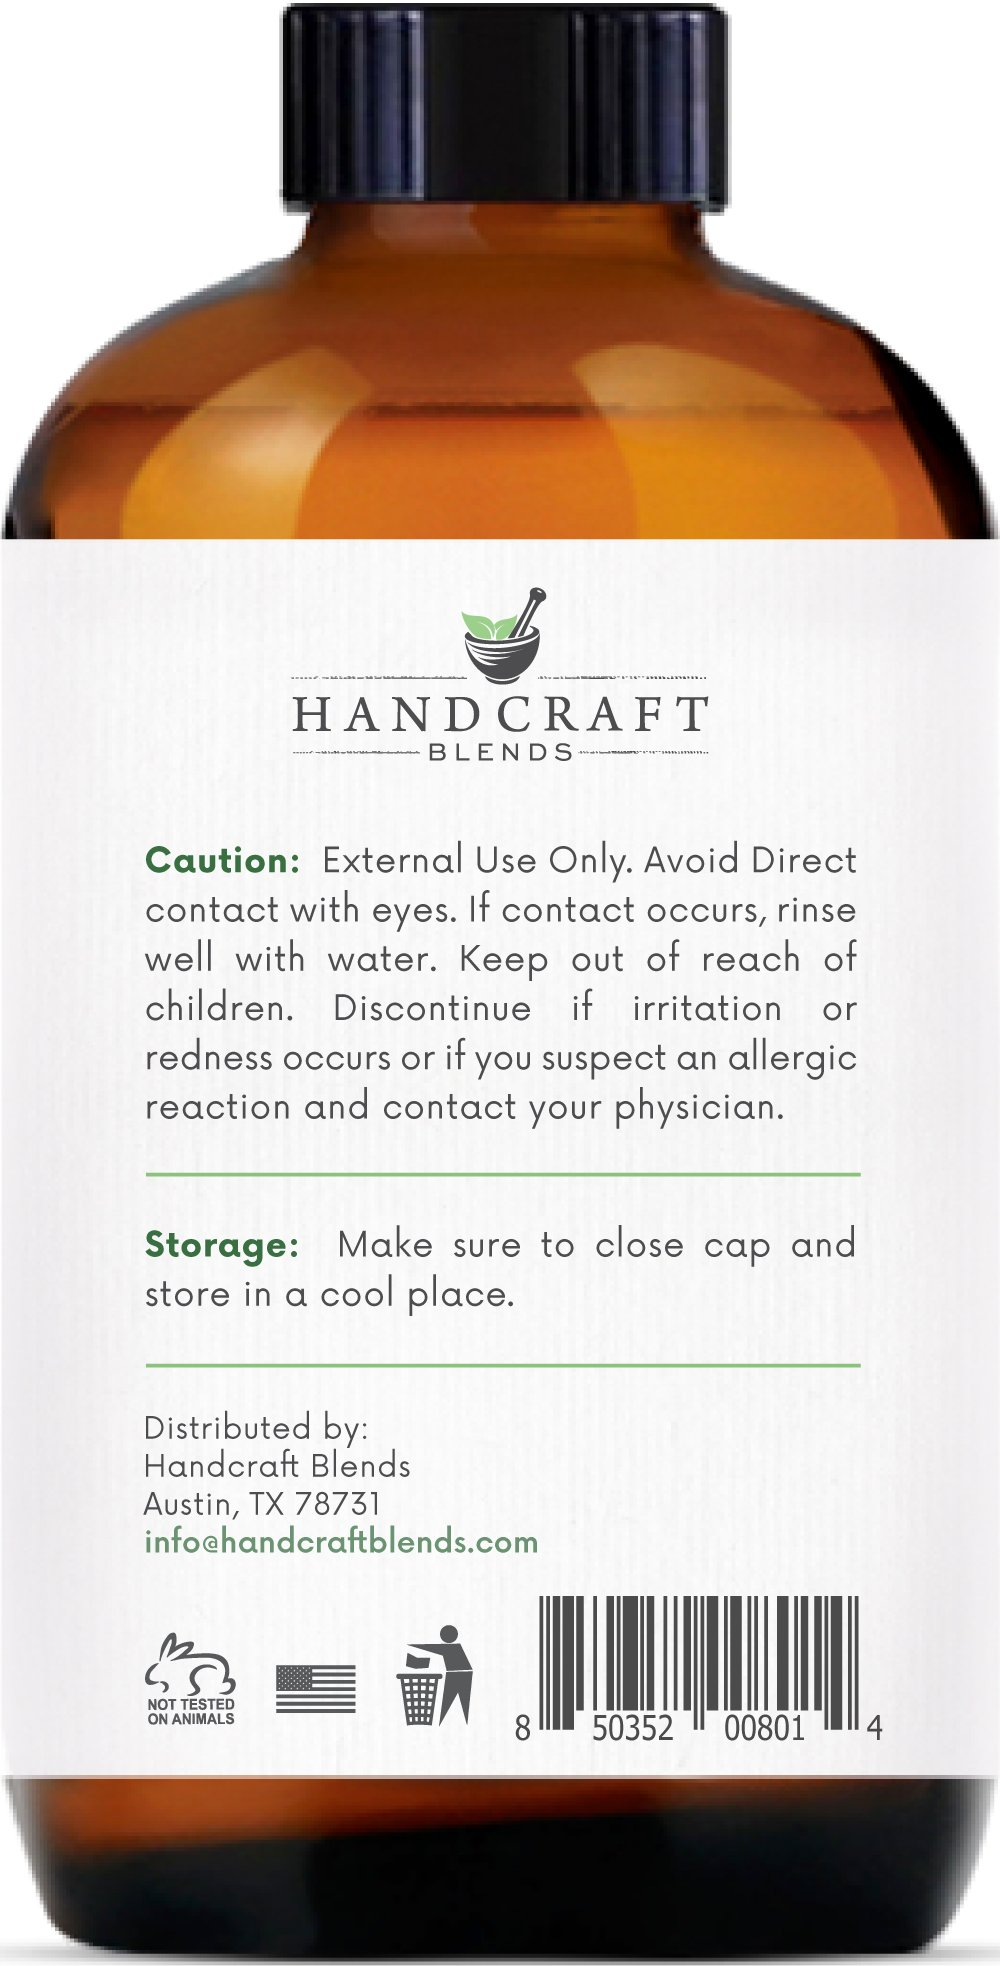 Handcraft Tea Tree Essential Oil - Huge 4 OZ - 100% Pure & Natural – Premium Therapeutic Grade with Premium Glass Dropper by Handcraft Blends (Image #2)